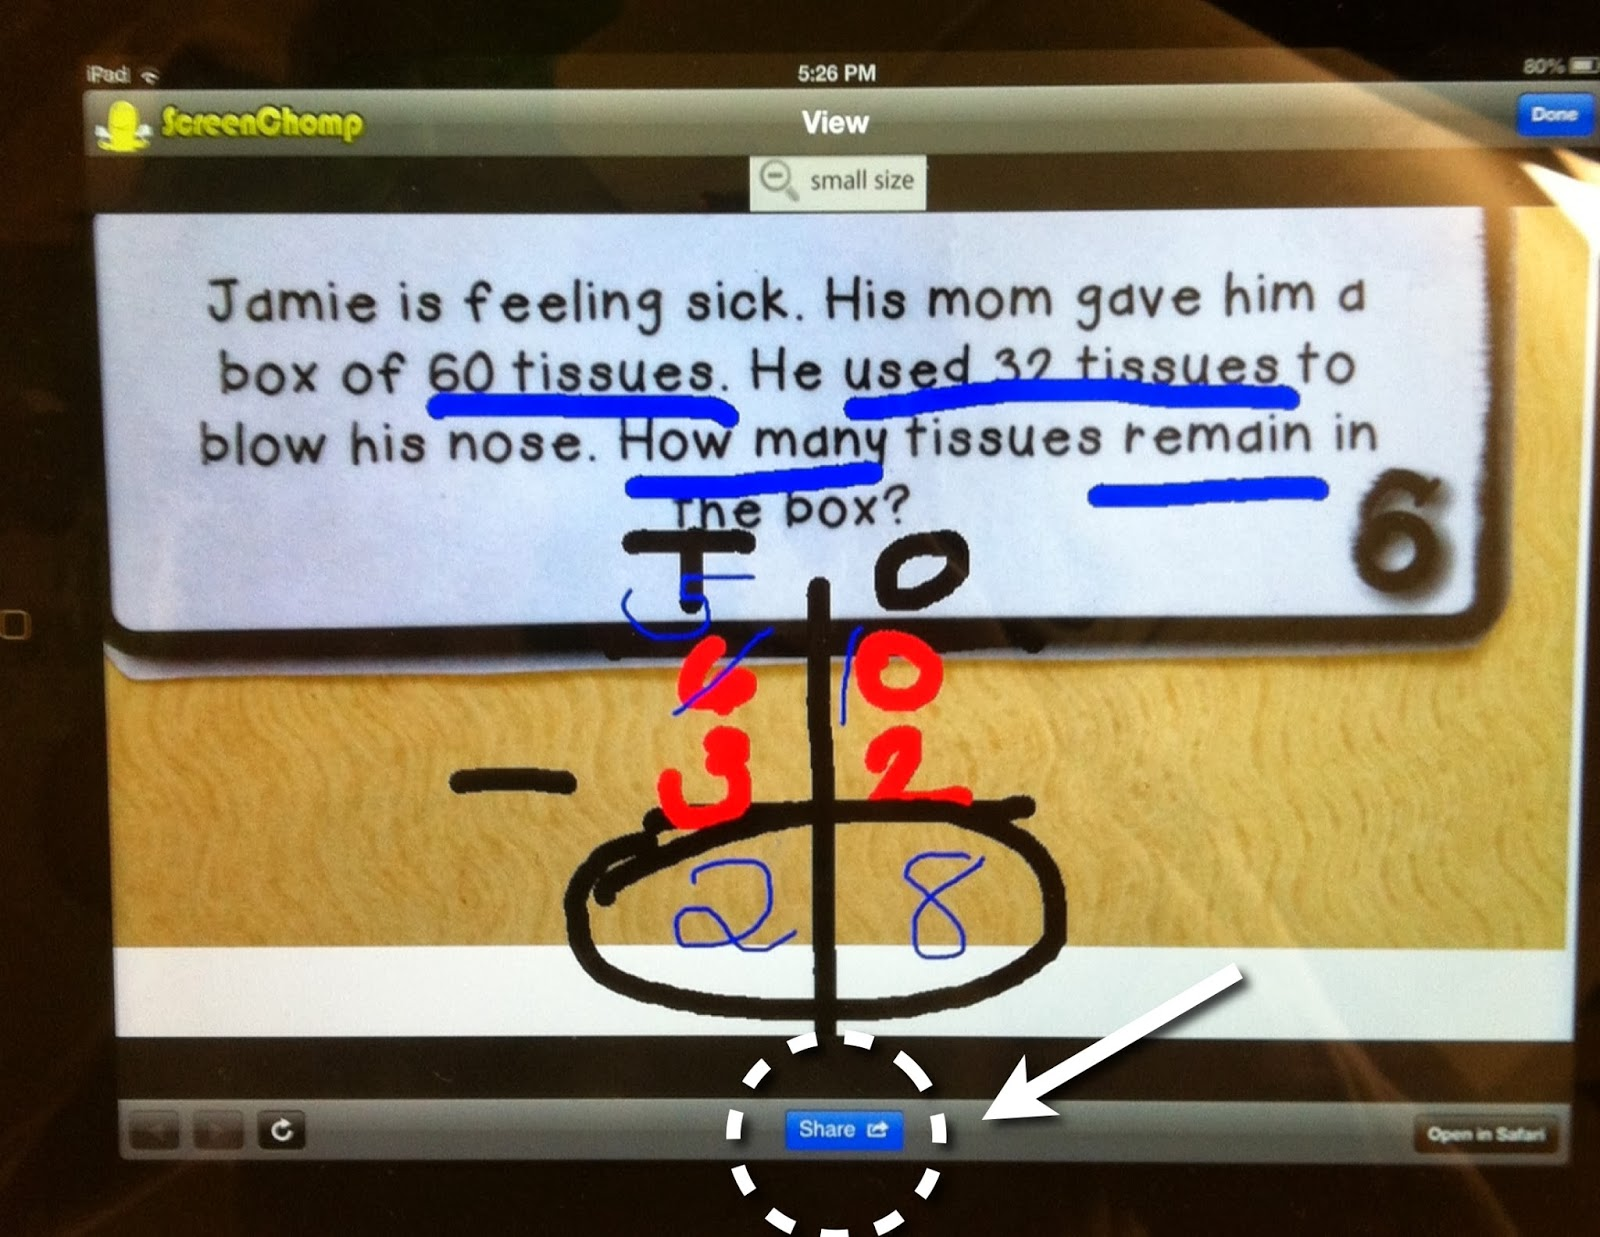 Integrating technology in the classroom is made easy with the app ScreenChomp! This post offers a tutorial on using ScreenChomp in a variety of ways.